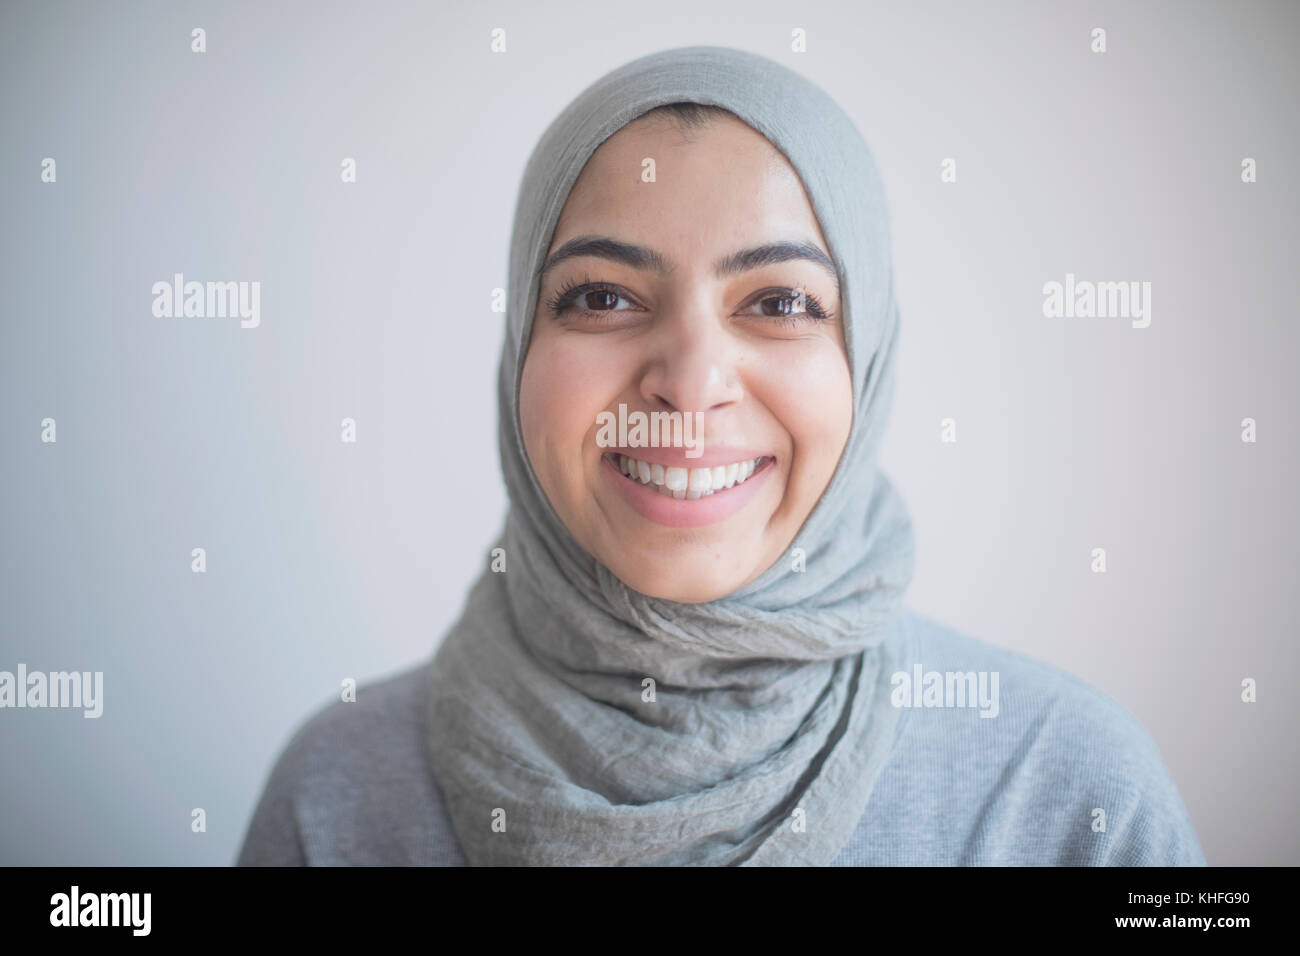 Portrait of a businesswoman wearing a hijab. - Stock Image